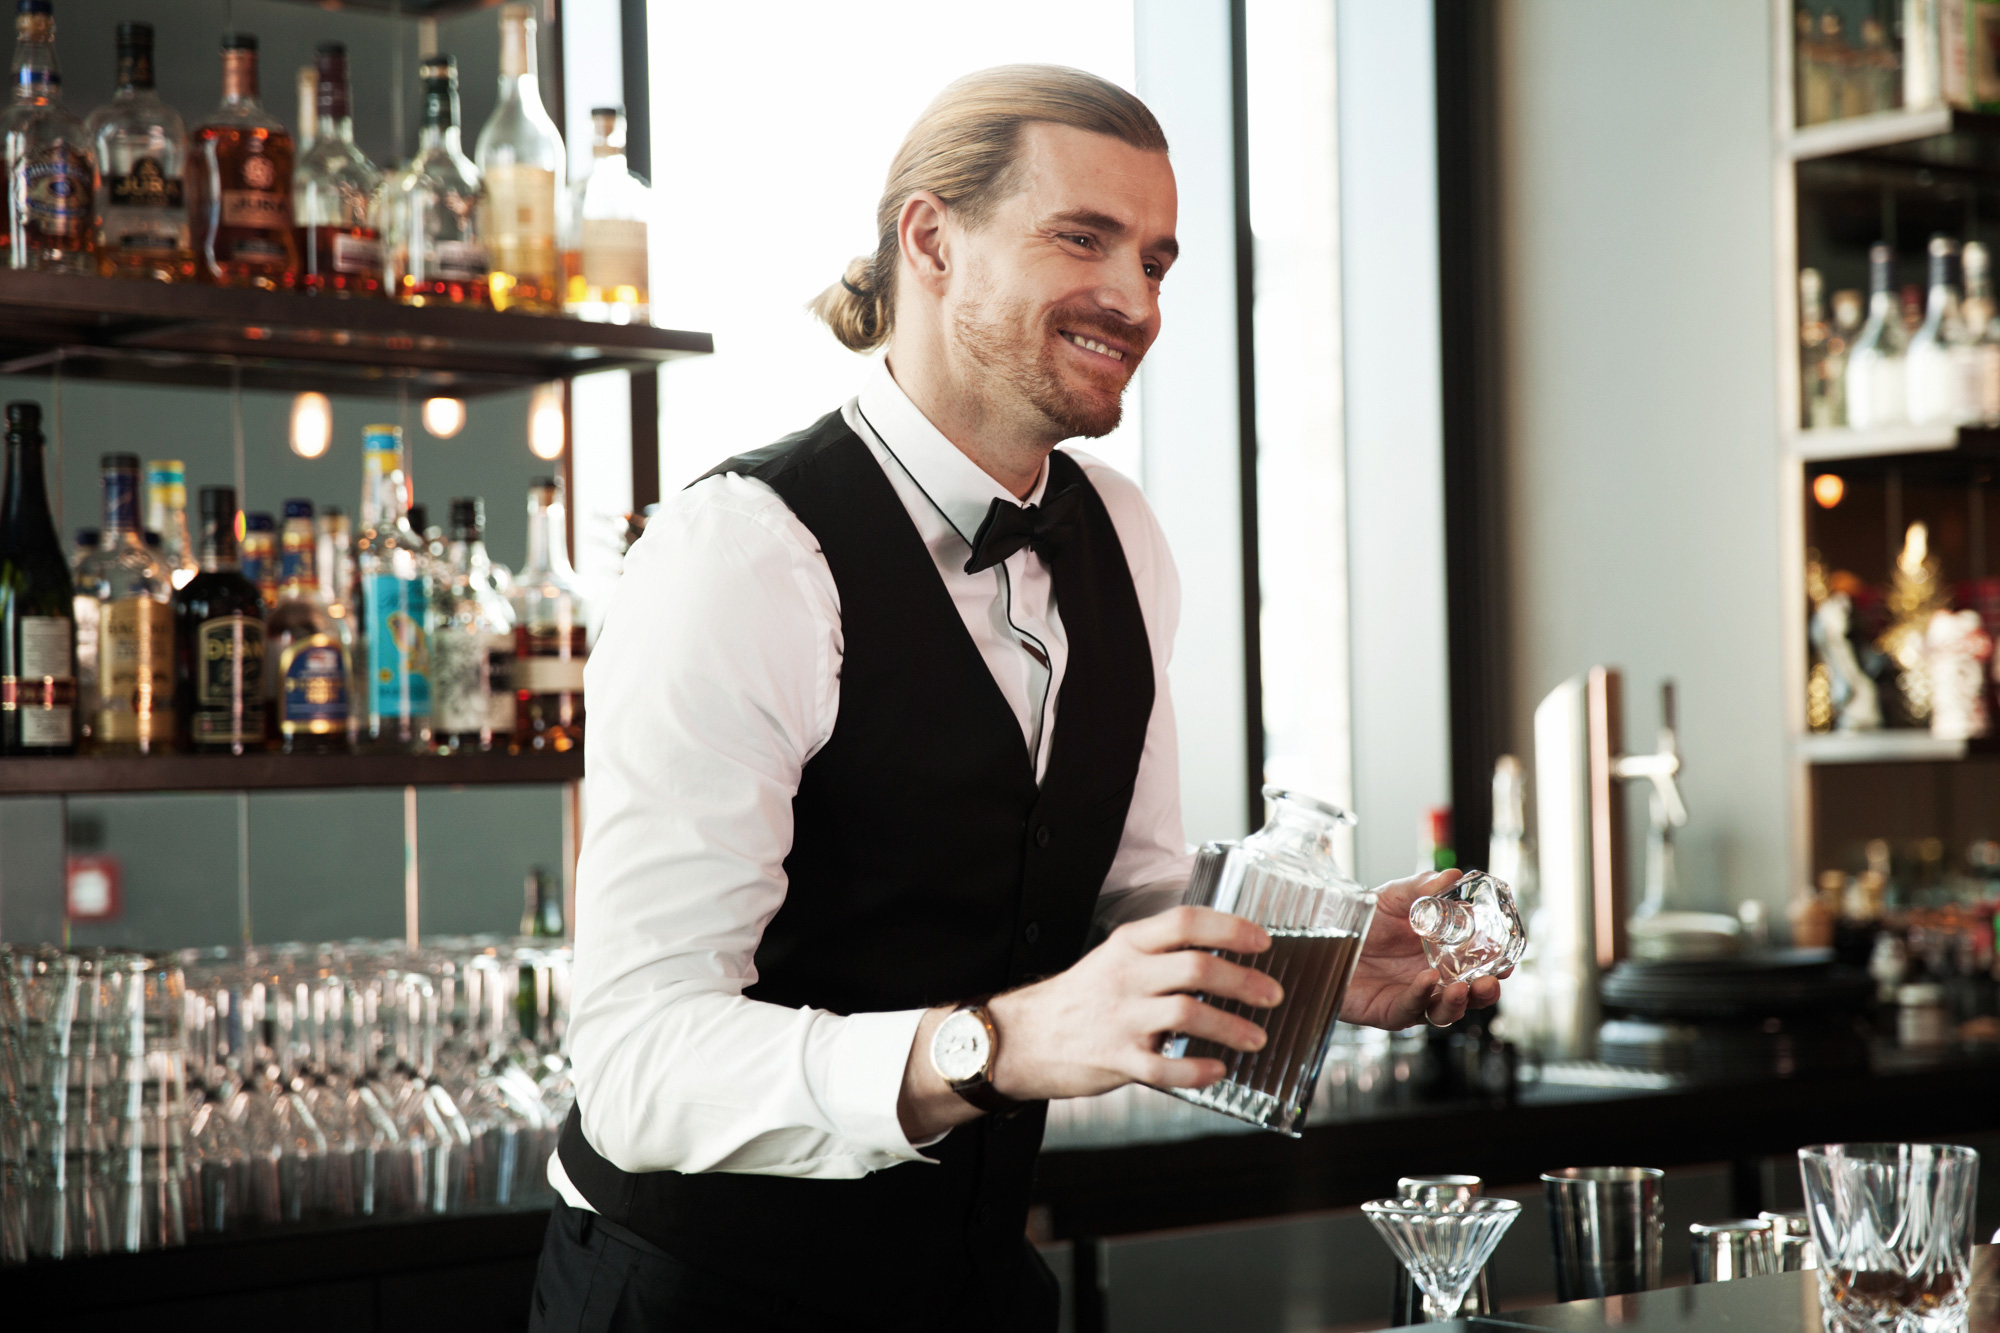 Bar- and service staff